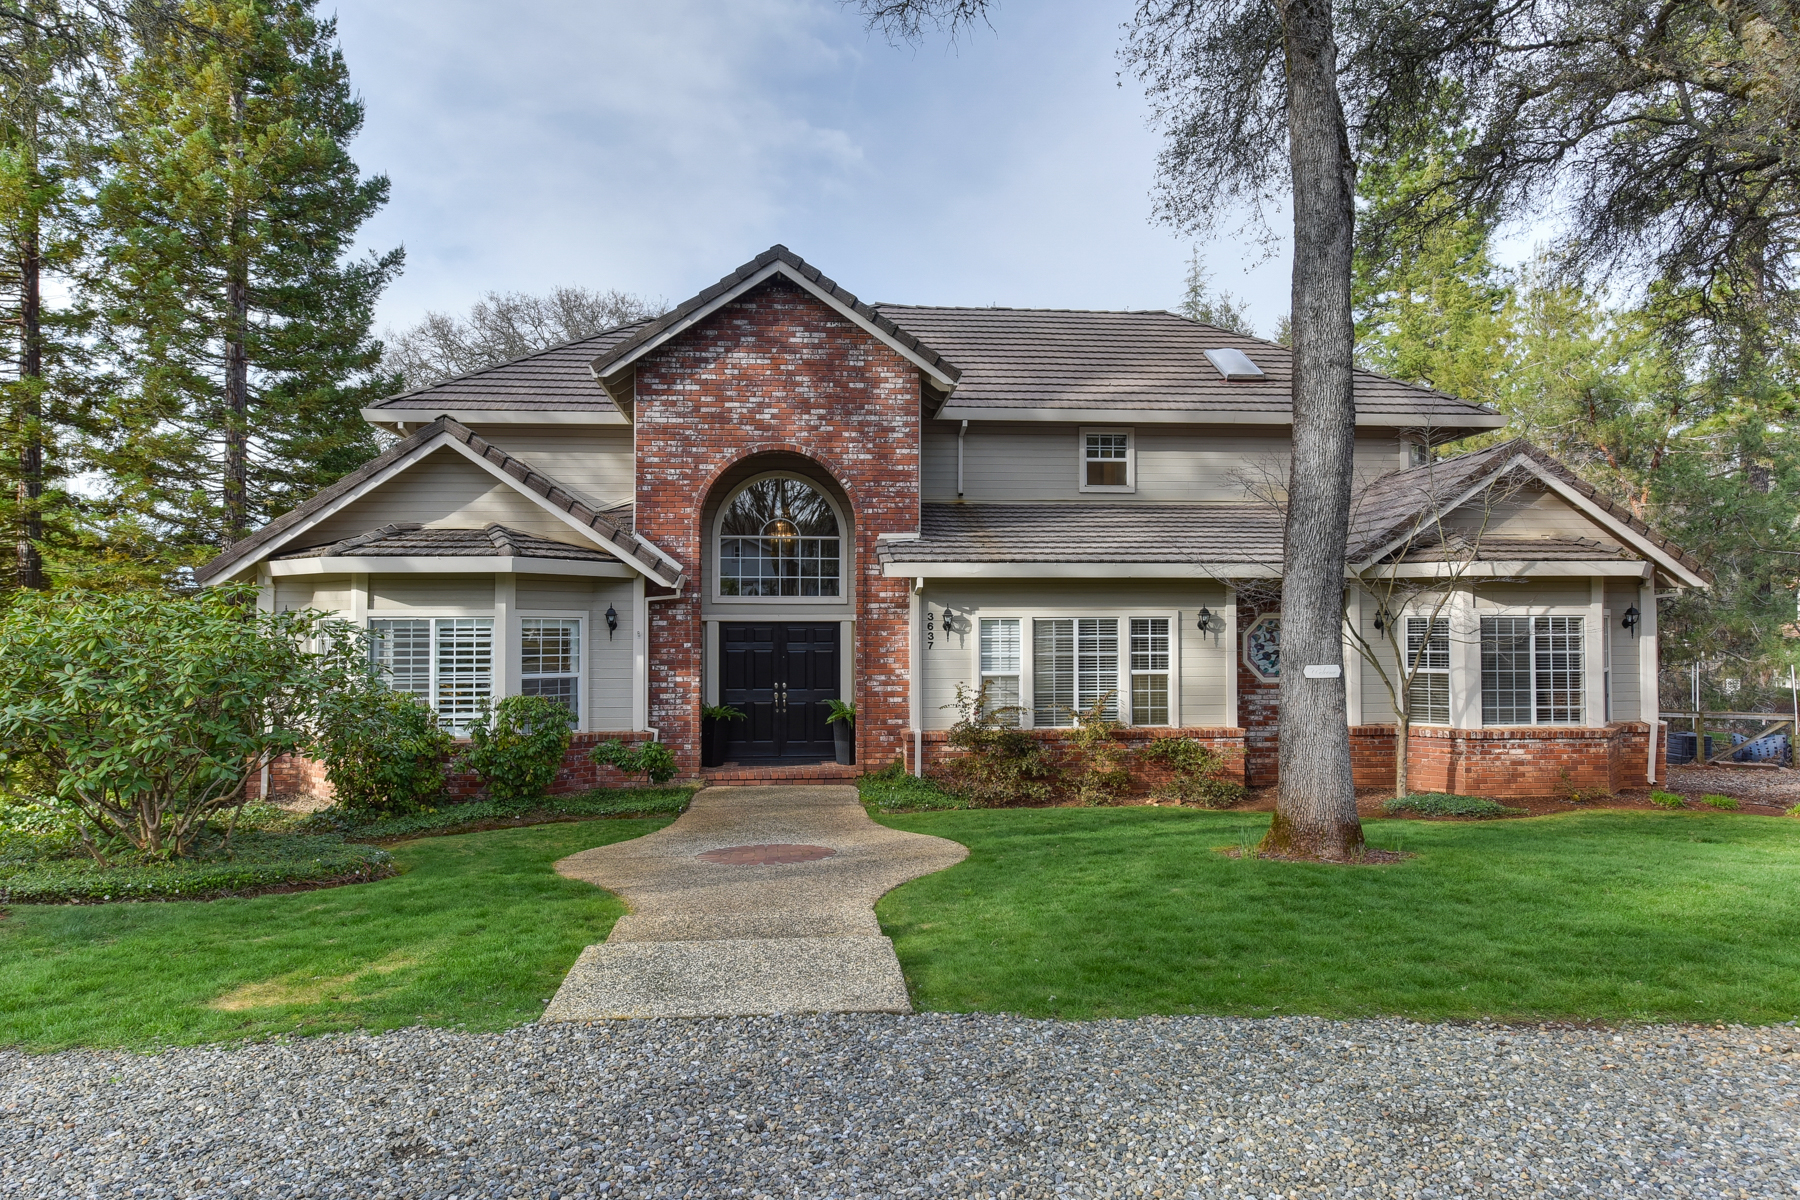 Single Family Home for Sale at 3637 Meder Ct, Shingle Springs, CA 95682 Shingle Springs, California, 95682 United States